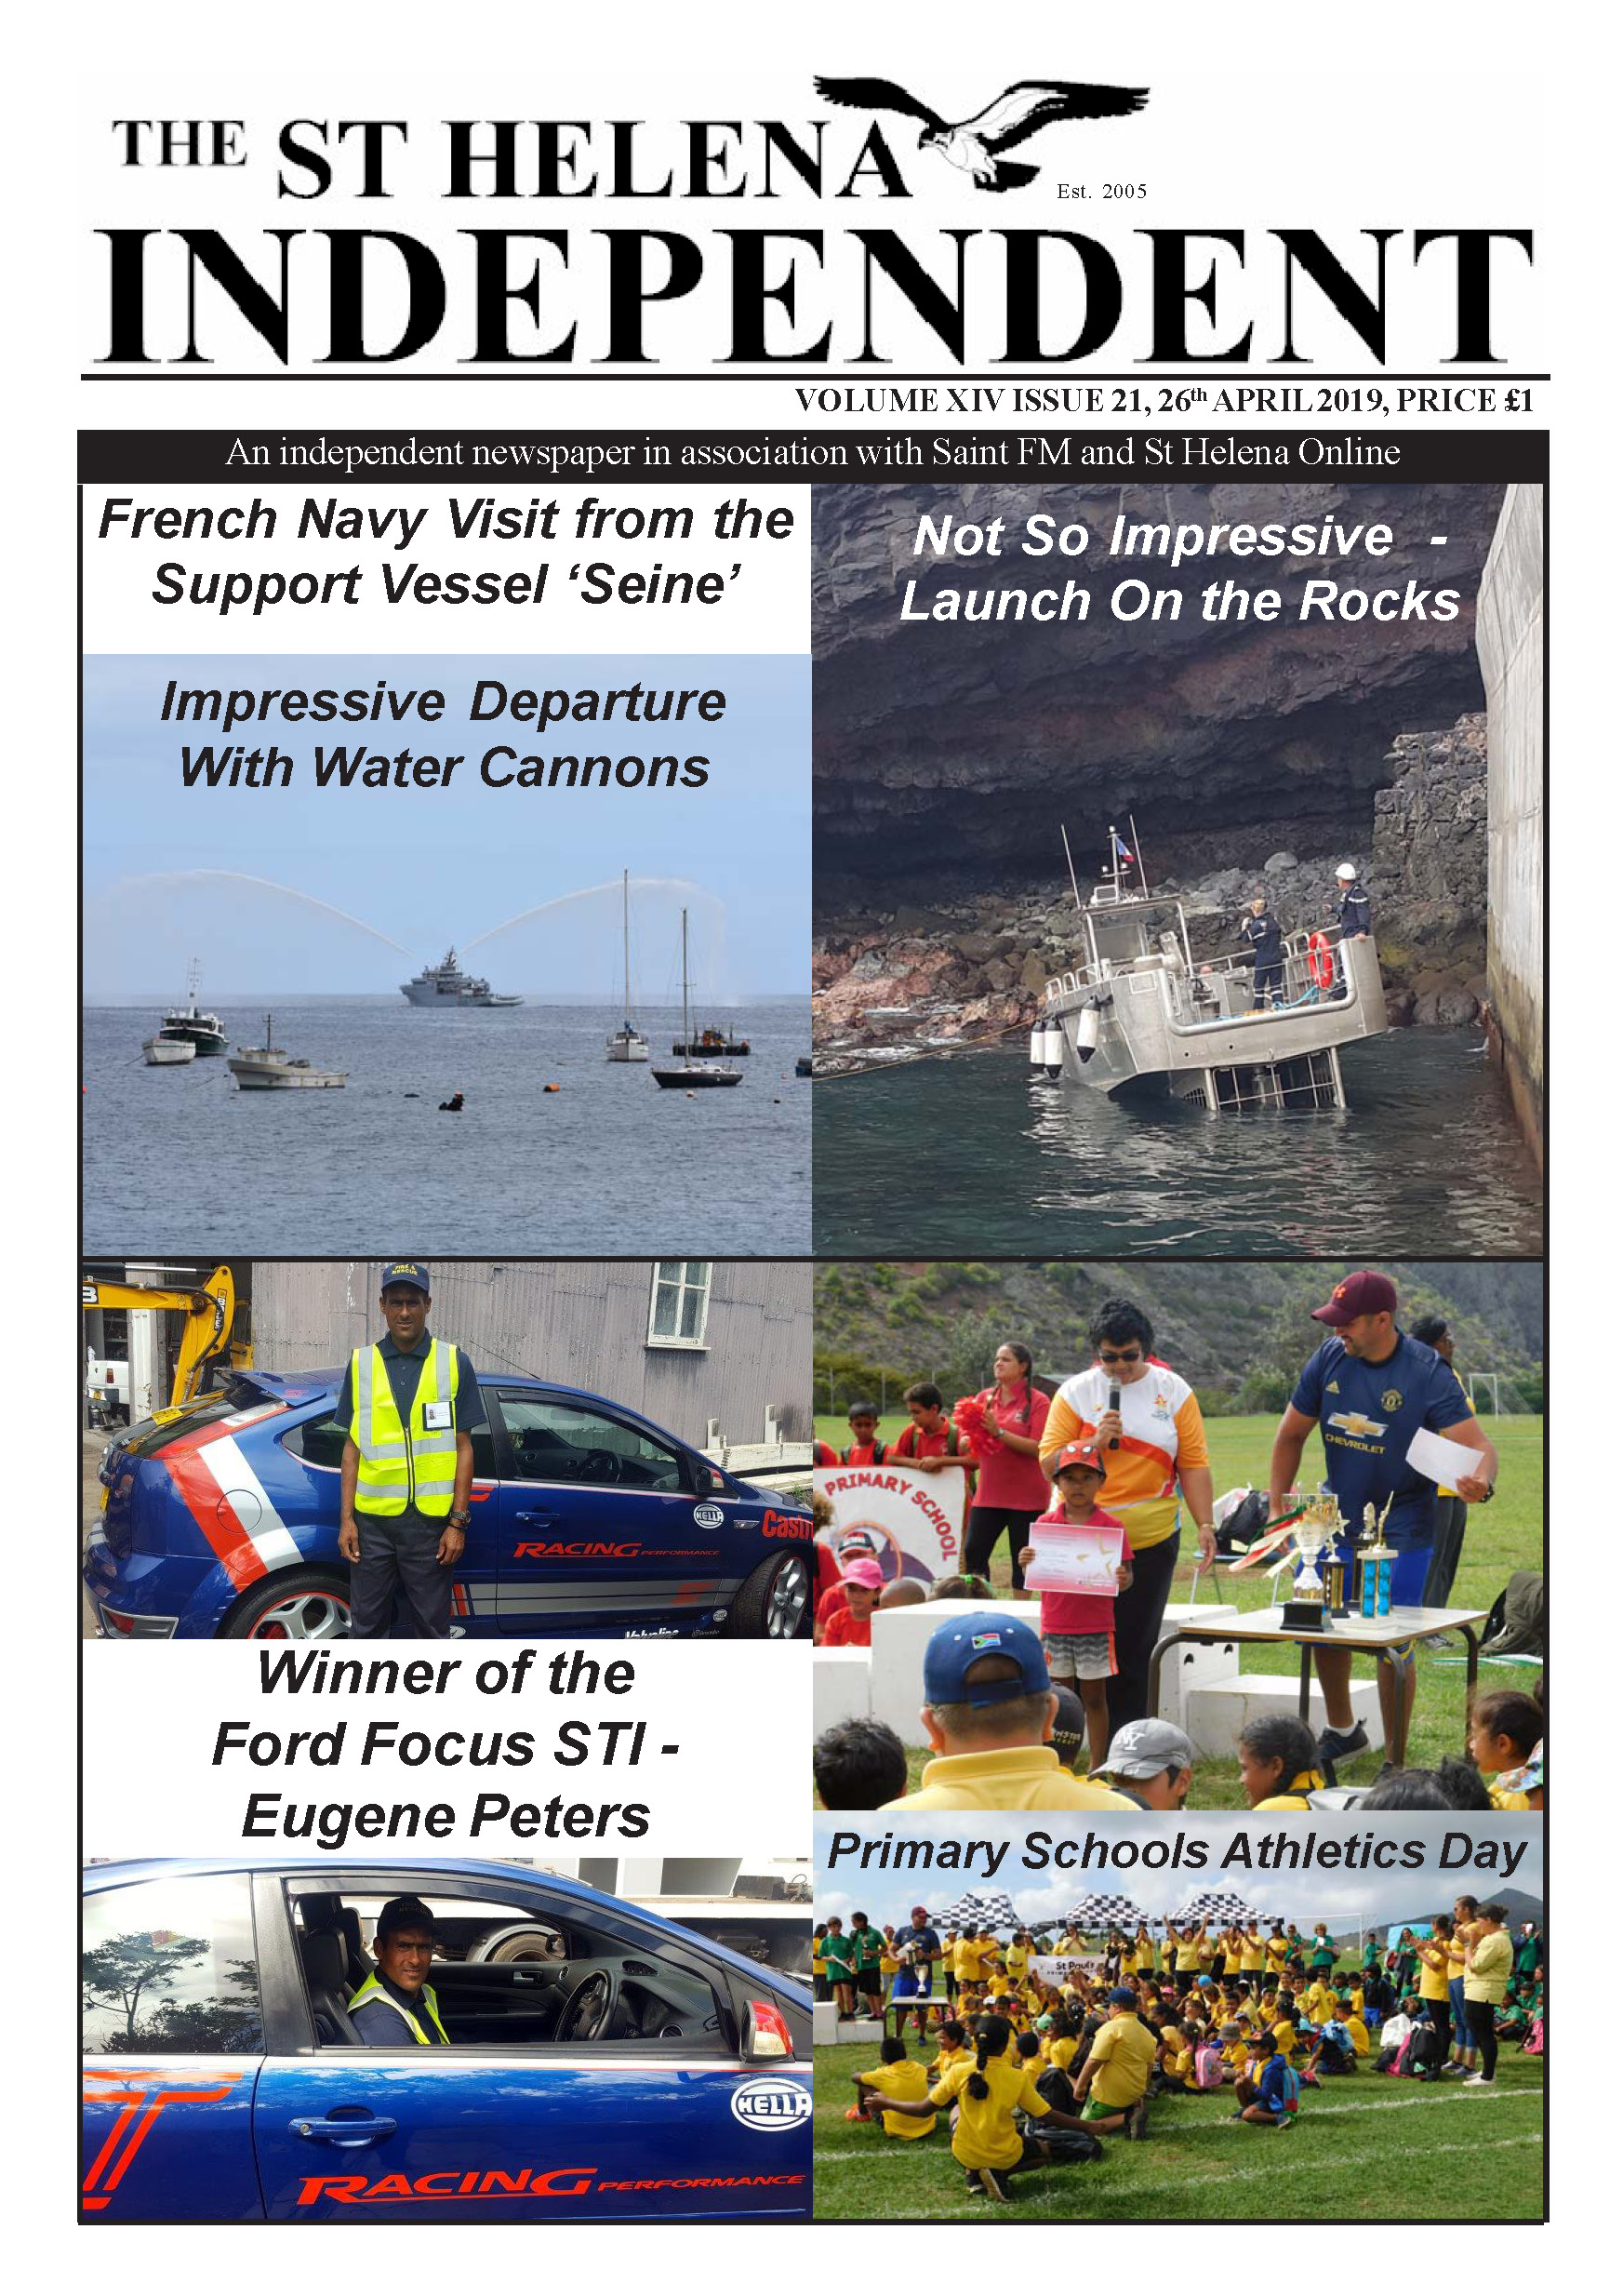 St Helena Independent 20190426